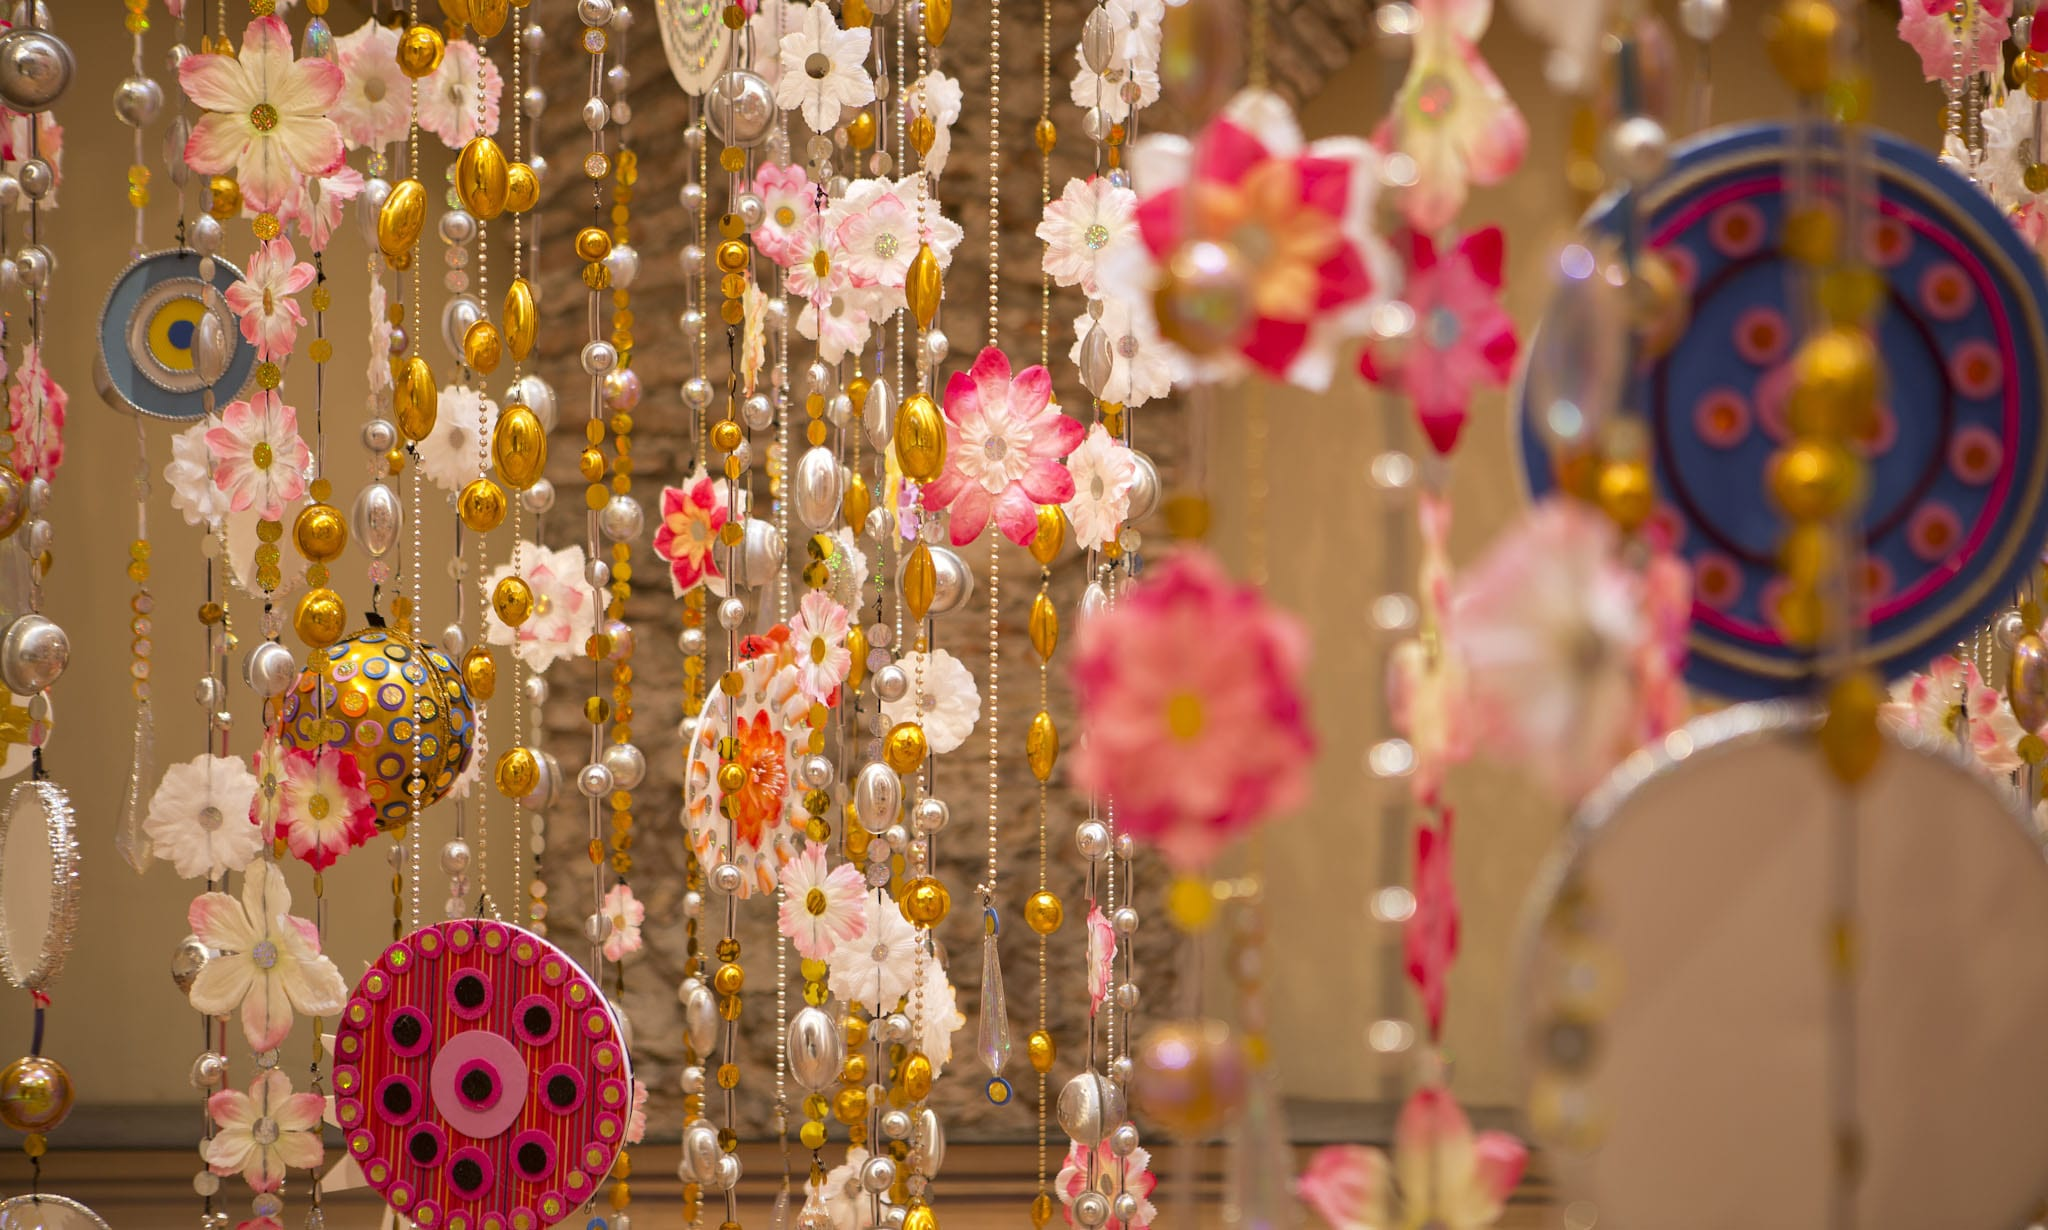 Hanging Installation by Beatriz Milhazes Created for the Jewish Museum's Lobby